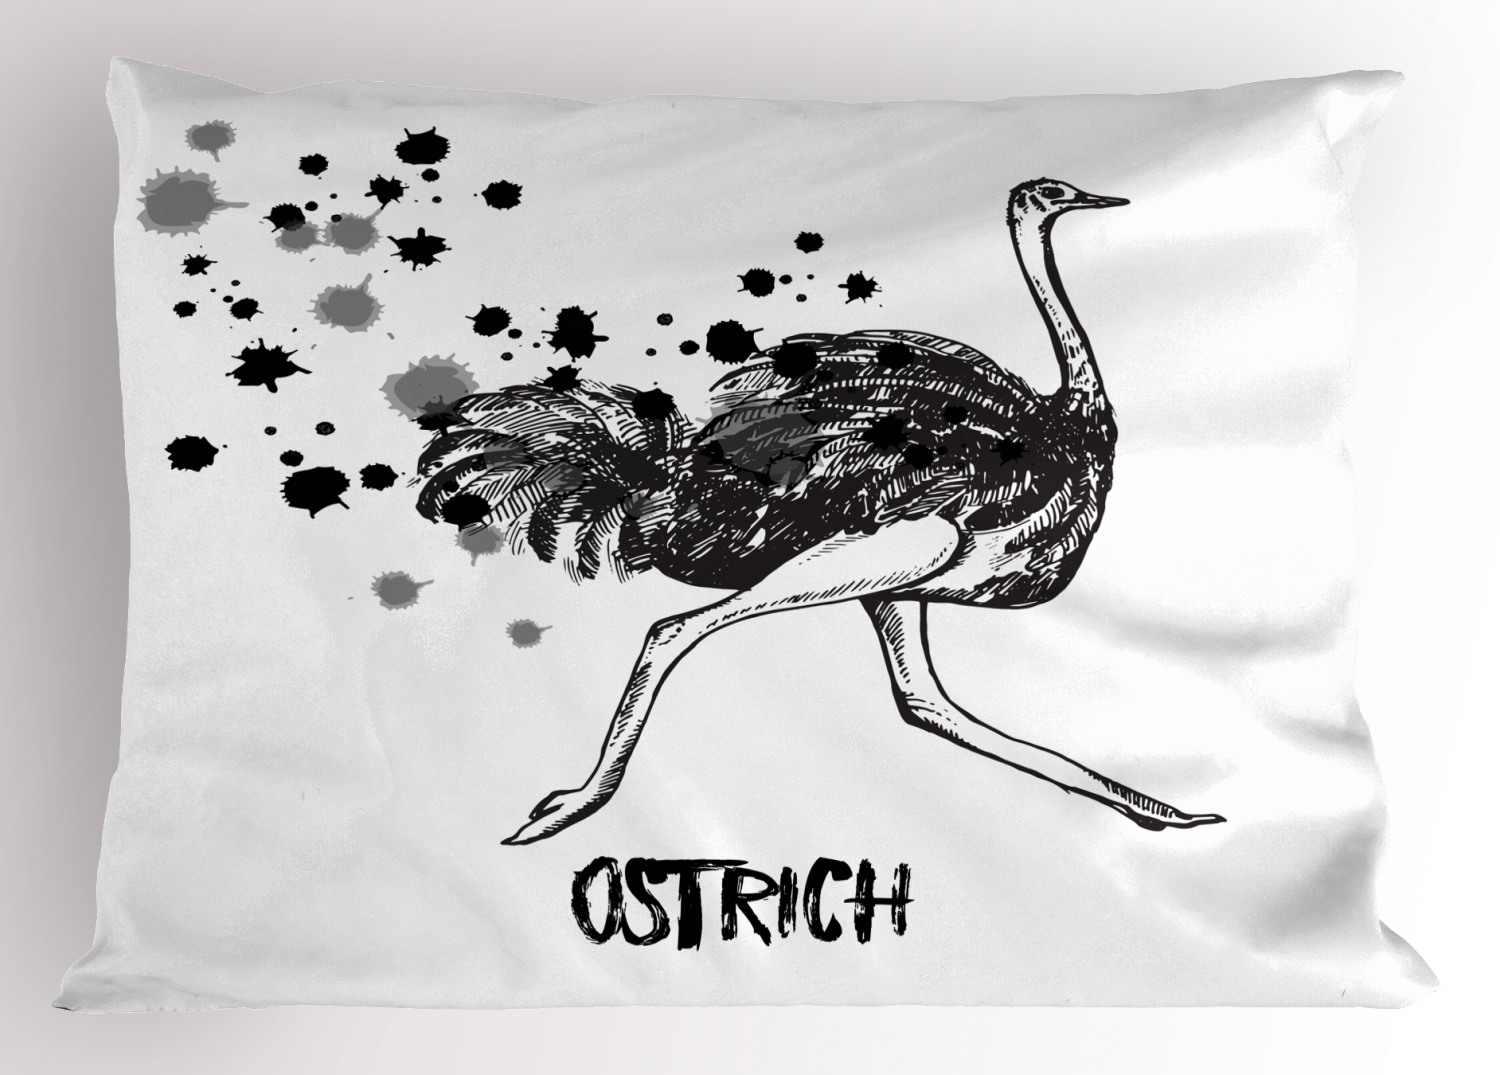 Ostrich Pillow Sham Minimalist Style Animal Bird In Watercolor Sketch Zoo Feathered Mammal Print Decorative Standard Size Printed Pillowcase 26 X 20 Inches Black White Grey By Ambesonne Walmart Com Walmart Com